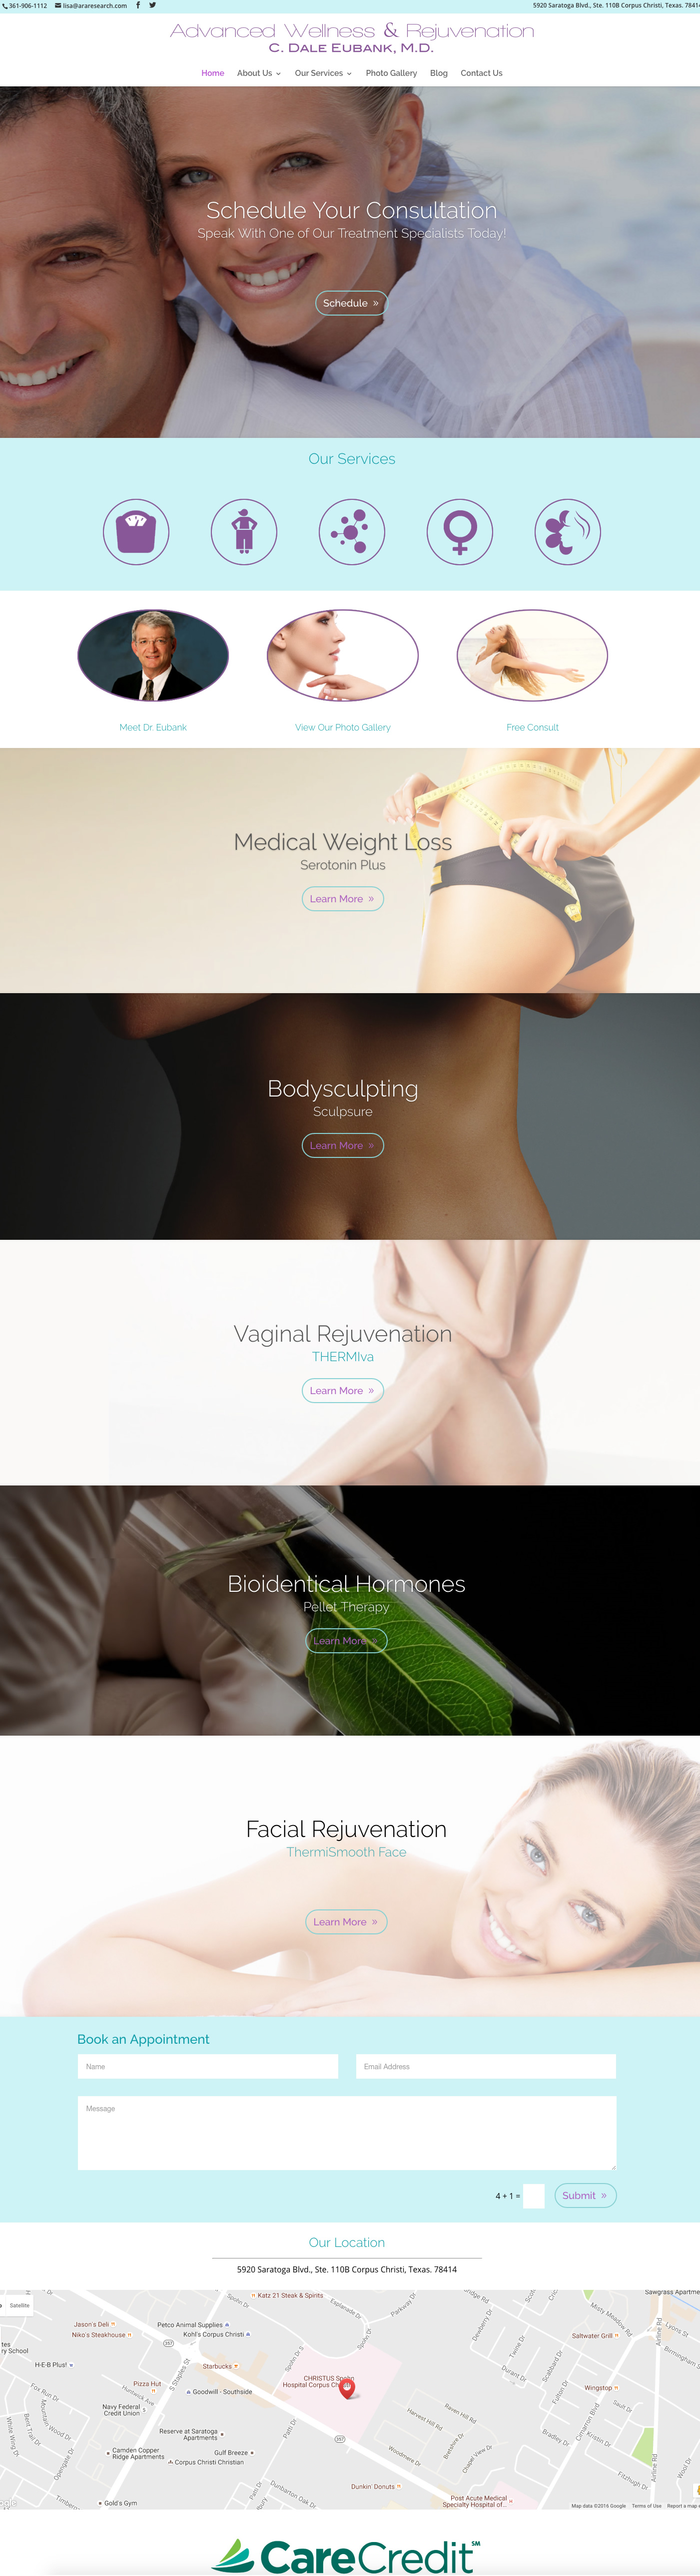 wellnessportfolio